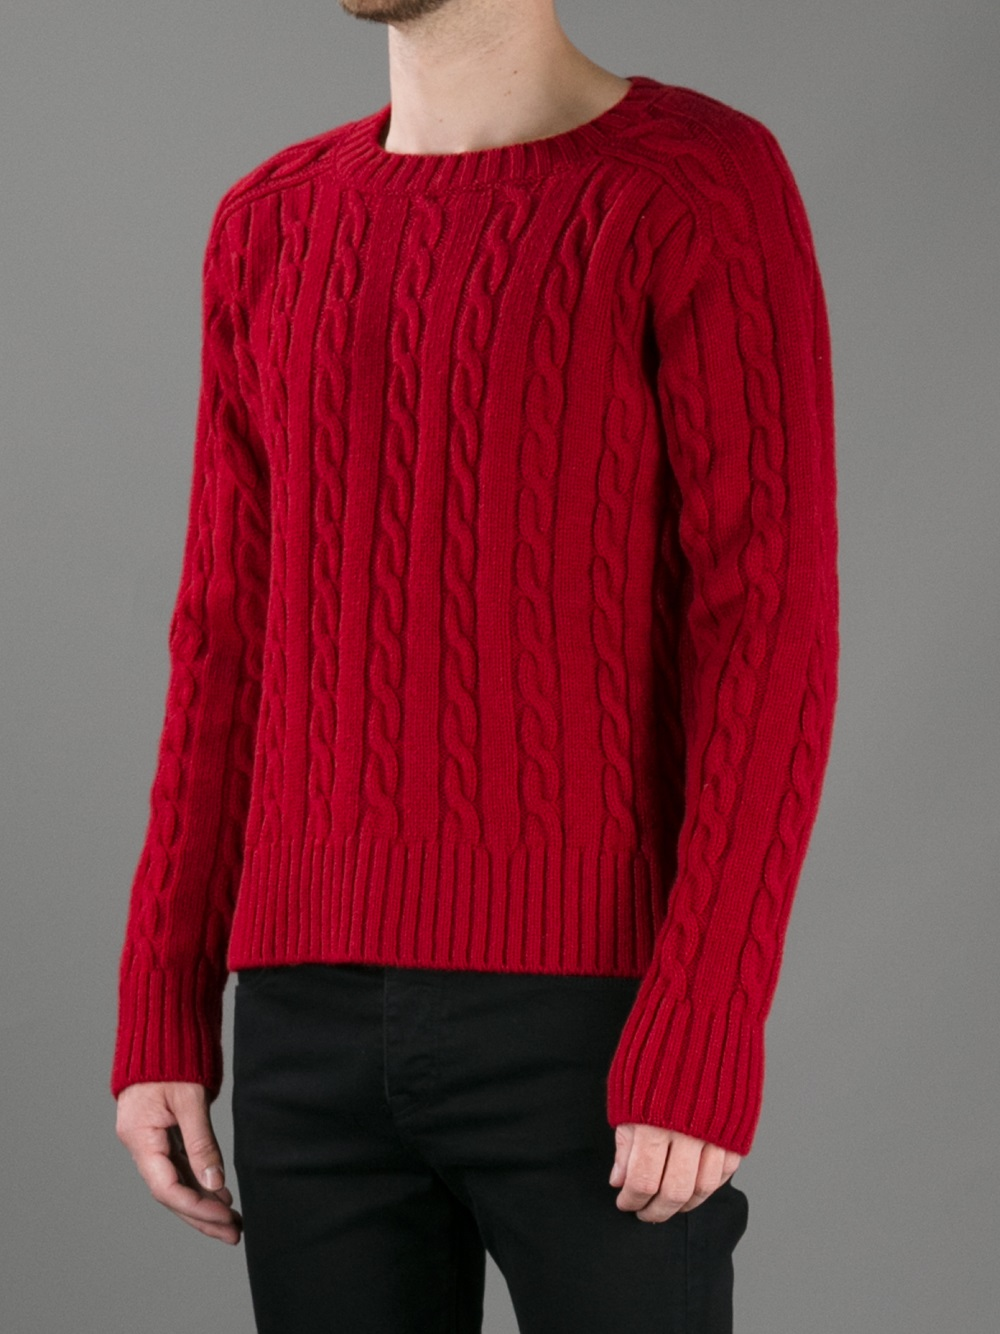 Saint laurent Cable Knit Sweater in Red for Men | Lyst